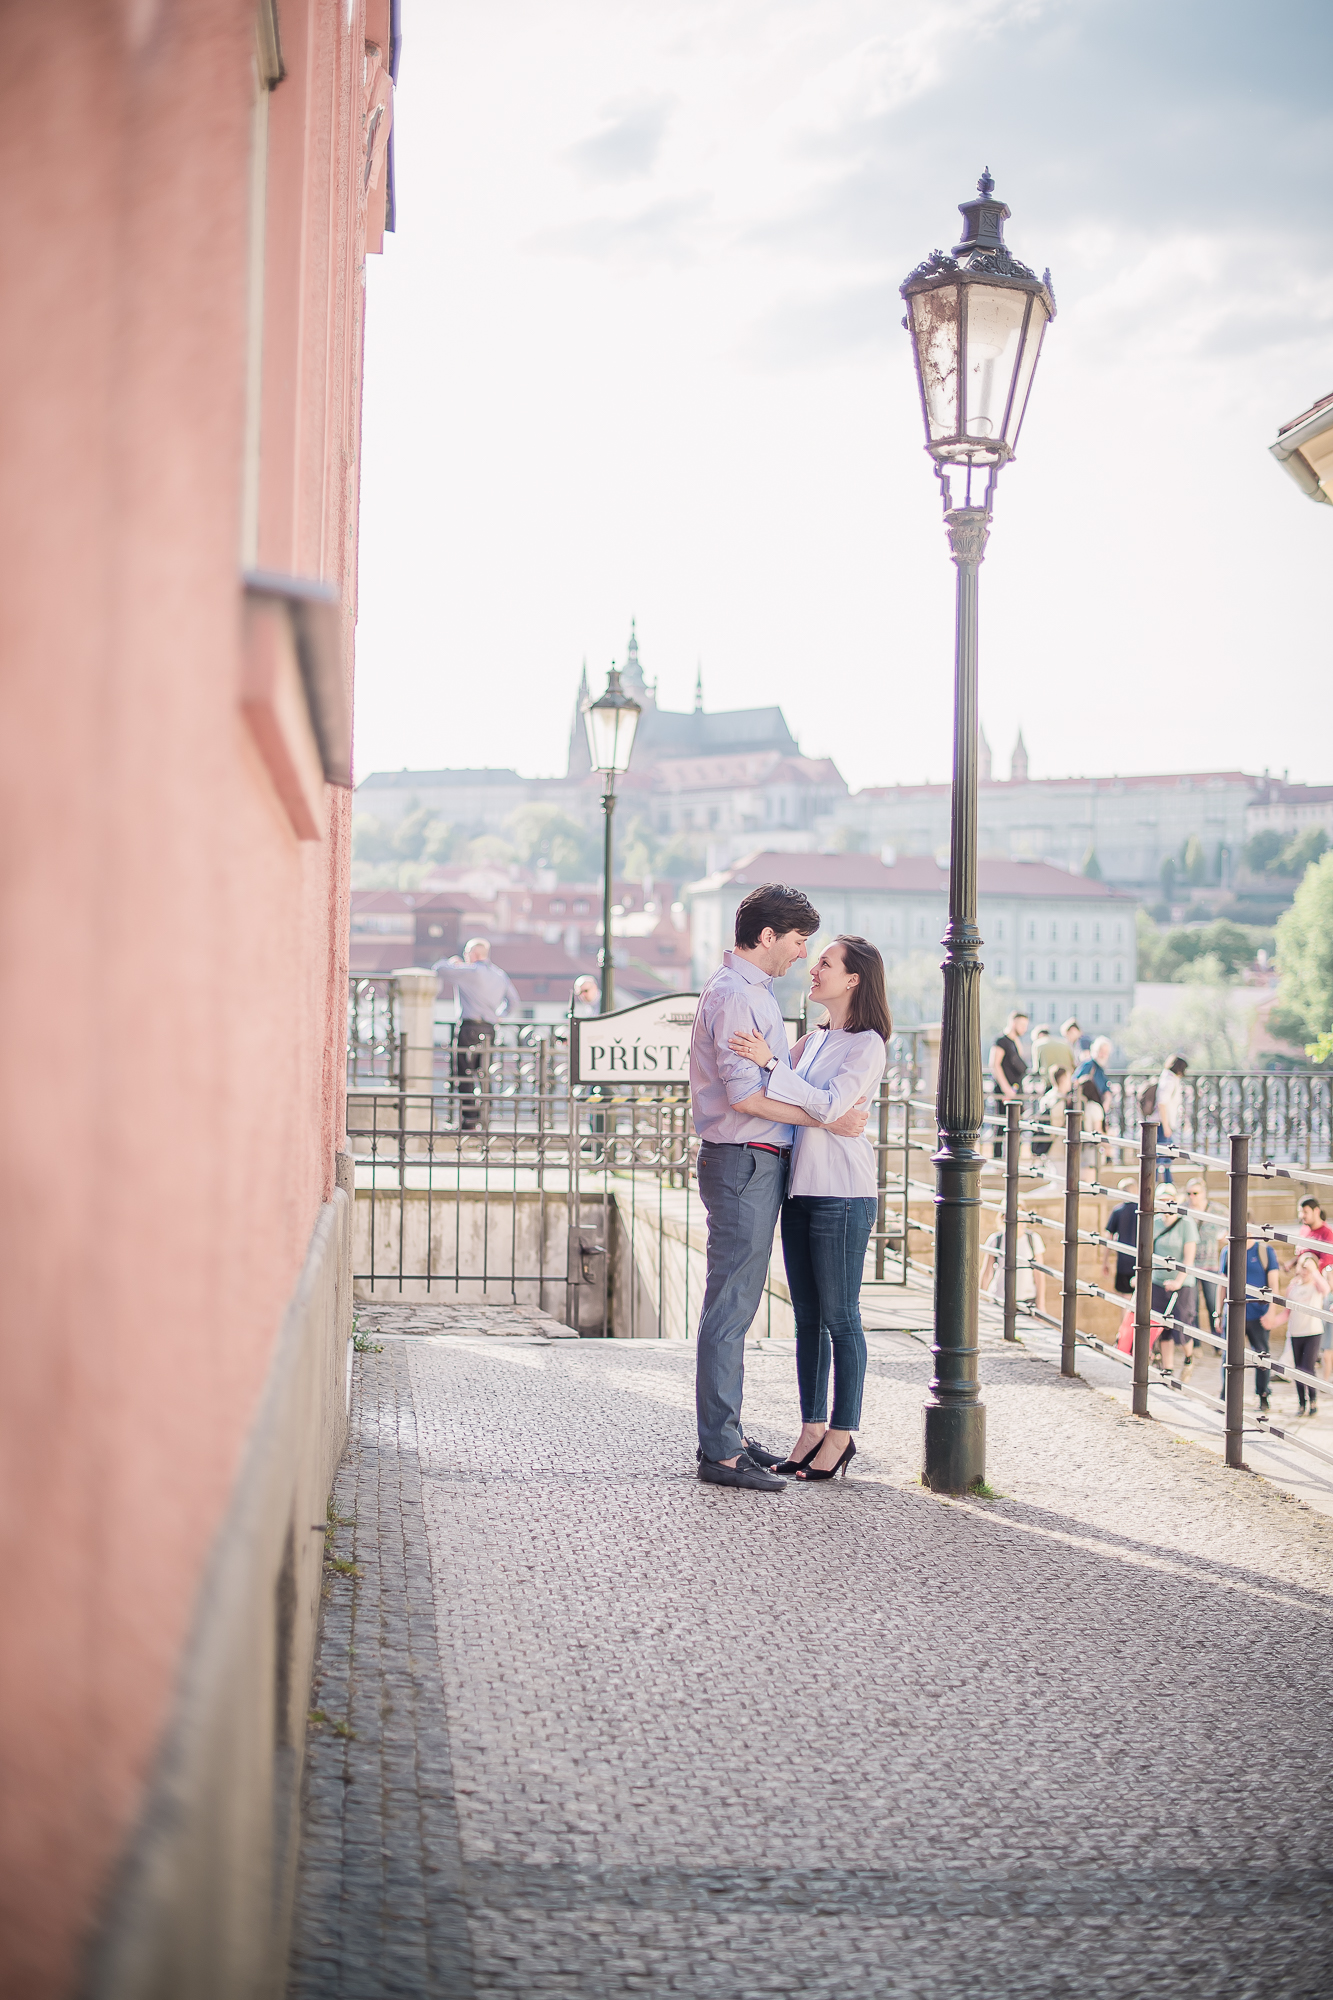 Prague-Wedding-Photography-Matej-Trasak-Engagement-SD-18.jpg